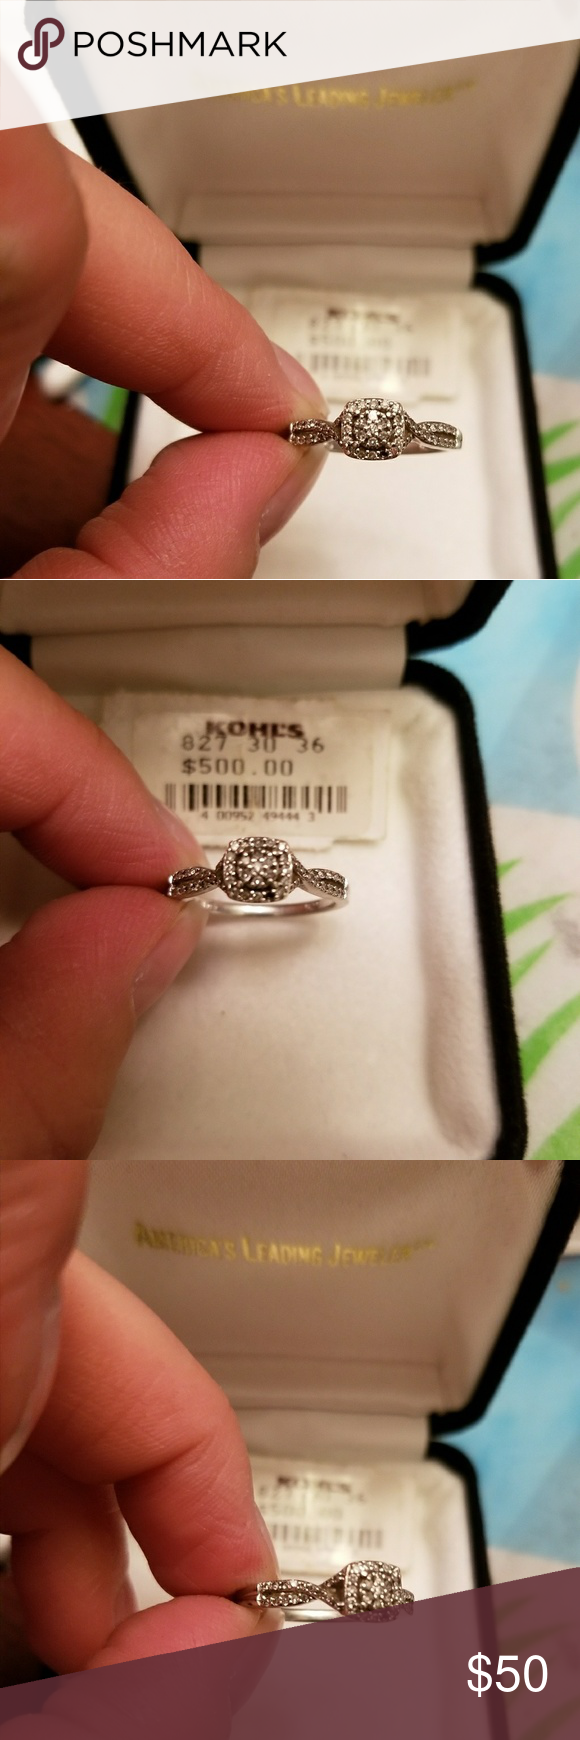 Diamond ring set in Sterling silver size 7 Diamond ring set in Sterling silver size 7 from Kohls one small diamond is missing at bottom of ring as seen in the picture. Very pretty ring worn a few times. Jewelry Rings